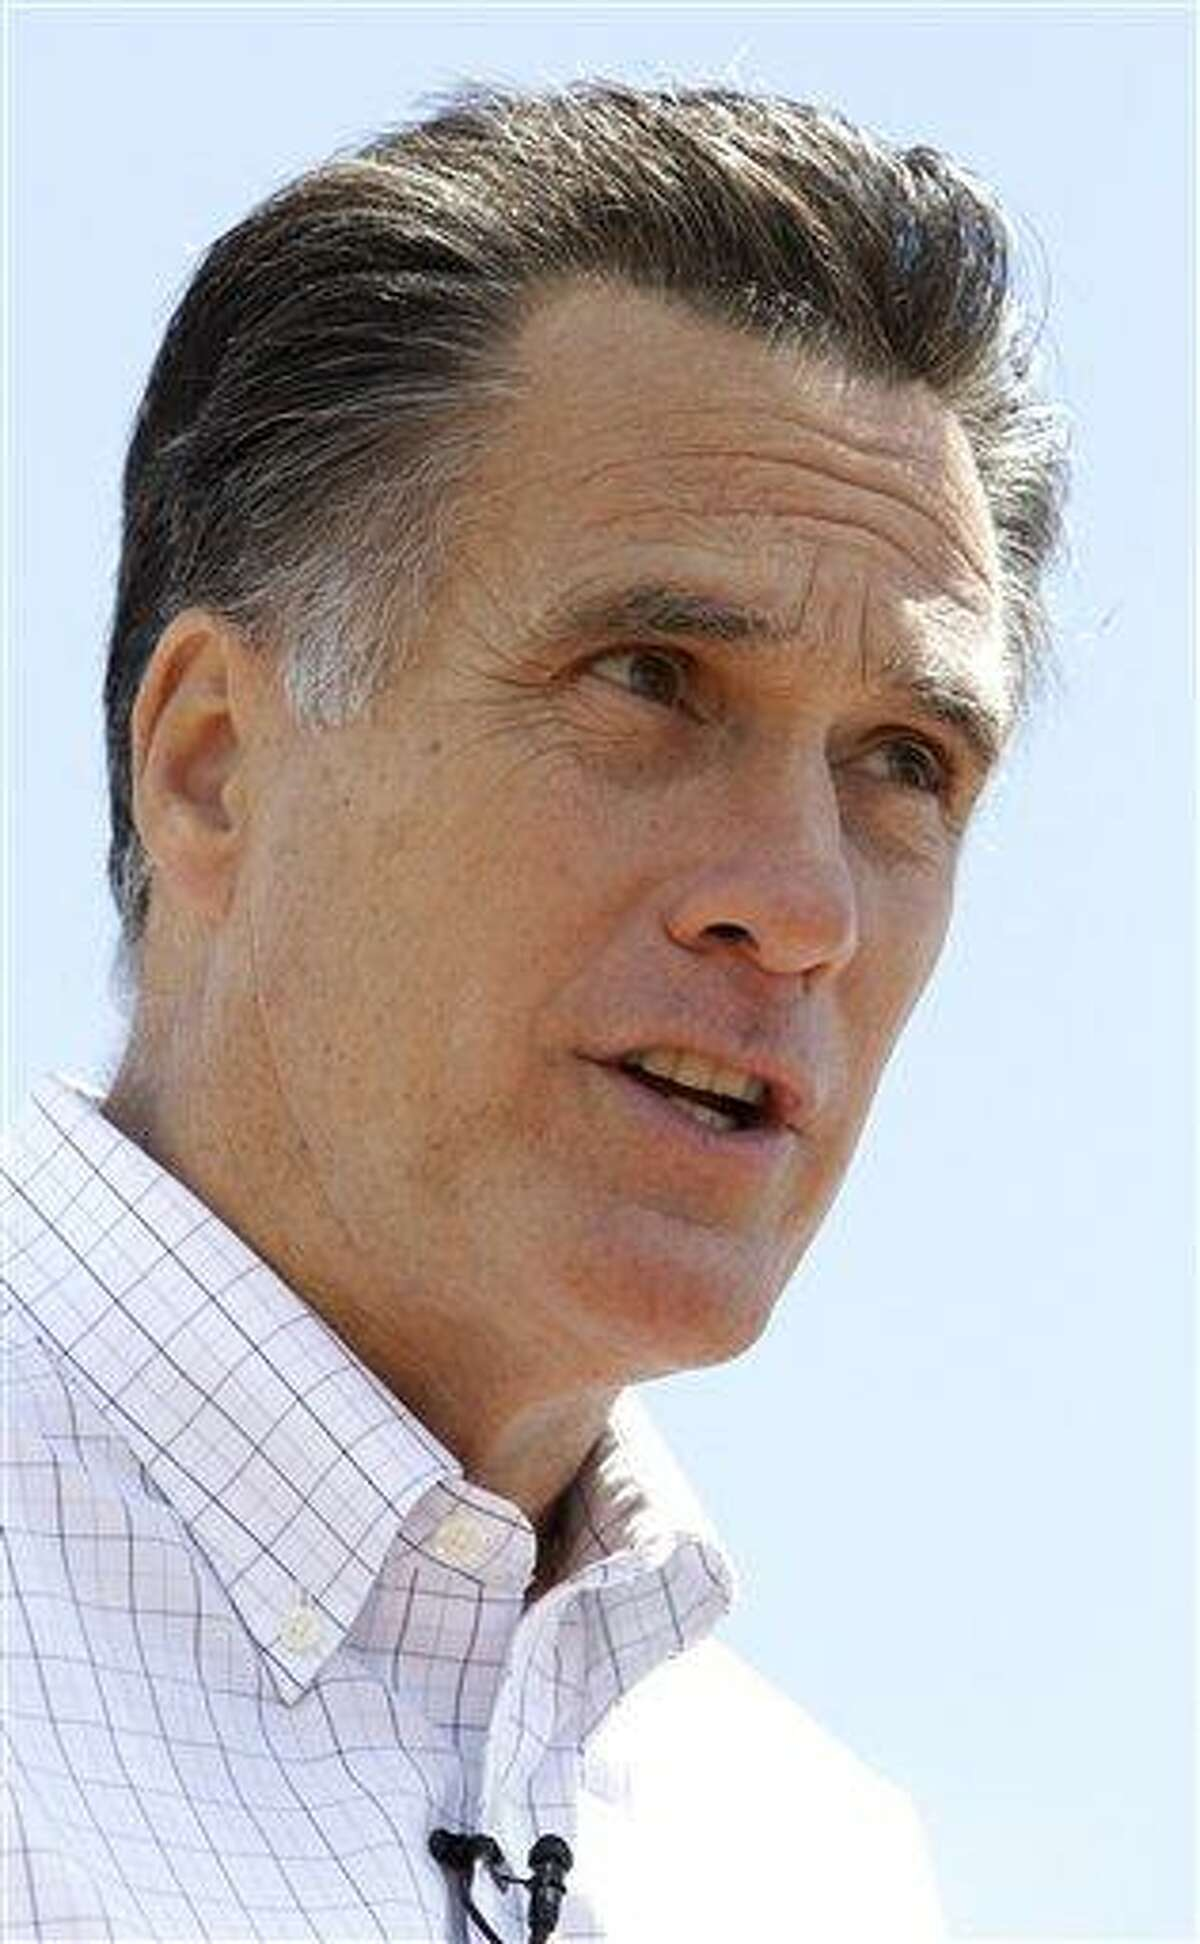 FILE In this June 2, 2011 photo, former Massachusetts Gov. Mitt Romney announces he is running for President of the United States,during a campaign event at Bittersweet Farm in Stratham, N.H. A gathering of religious conservatives drew nearly all the GOP presidential hopefuls to a single stage, a claim that a South Carolina debate and a well-publicized forum in New Hampshire couldn't make about their recent events. The Faith and Freedom Coalition's two-day conference proved that the religious right still plays a major role in the nominating process, even if it's less organized than during the Christian Coalition's heyday and economic issues are dominating the early campaign. (AP Photo/Stephan Savoia)